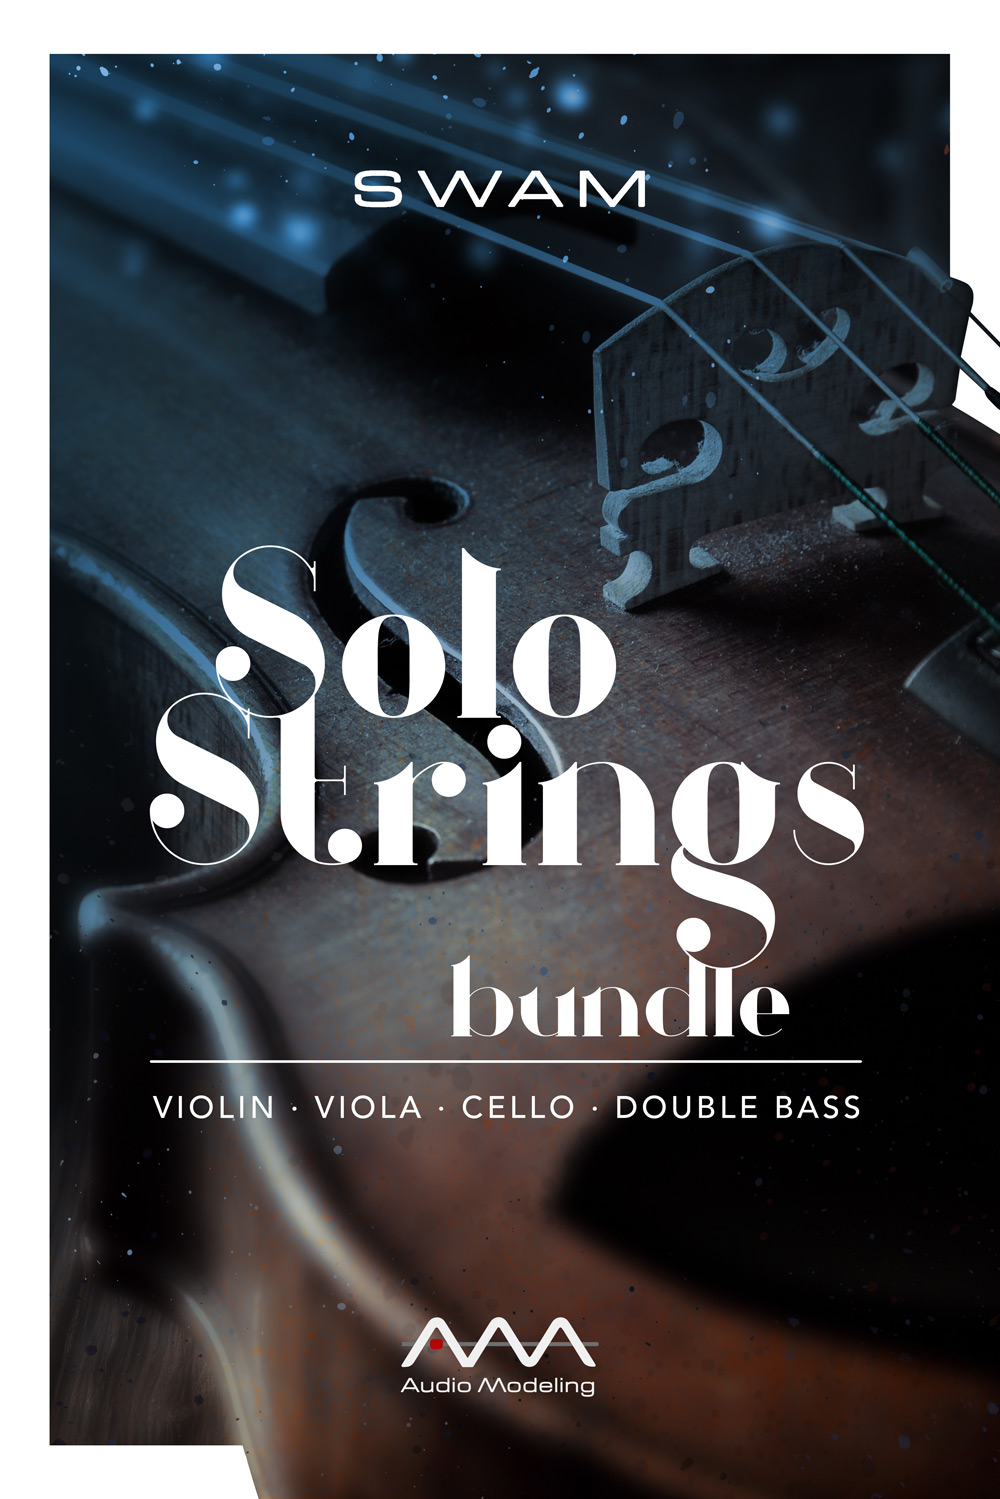 20180921_swam_solo_strings